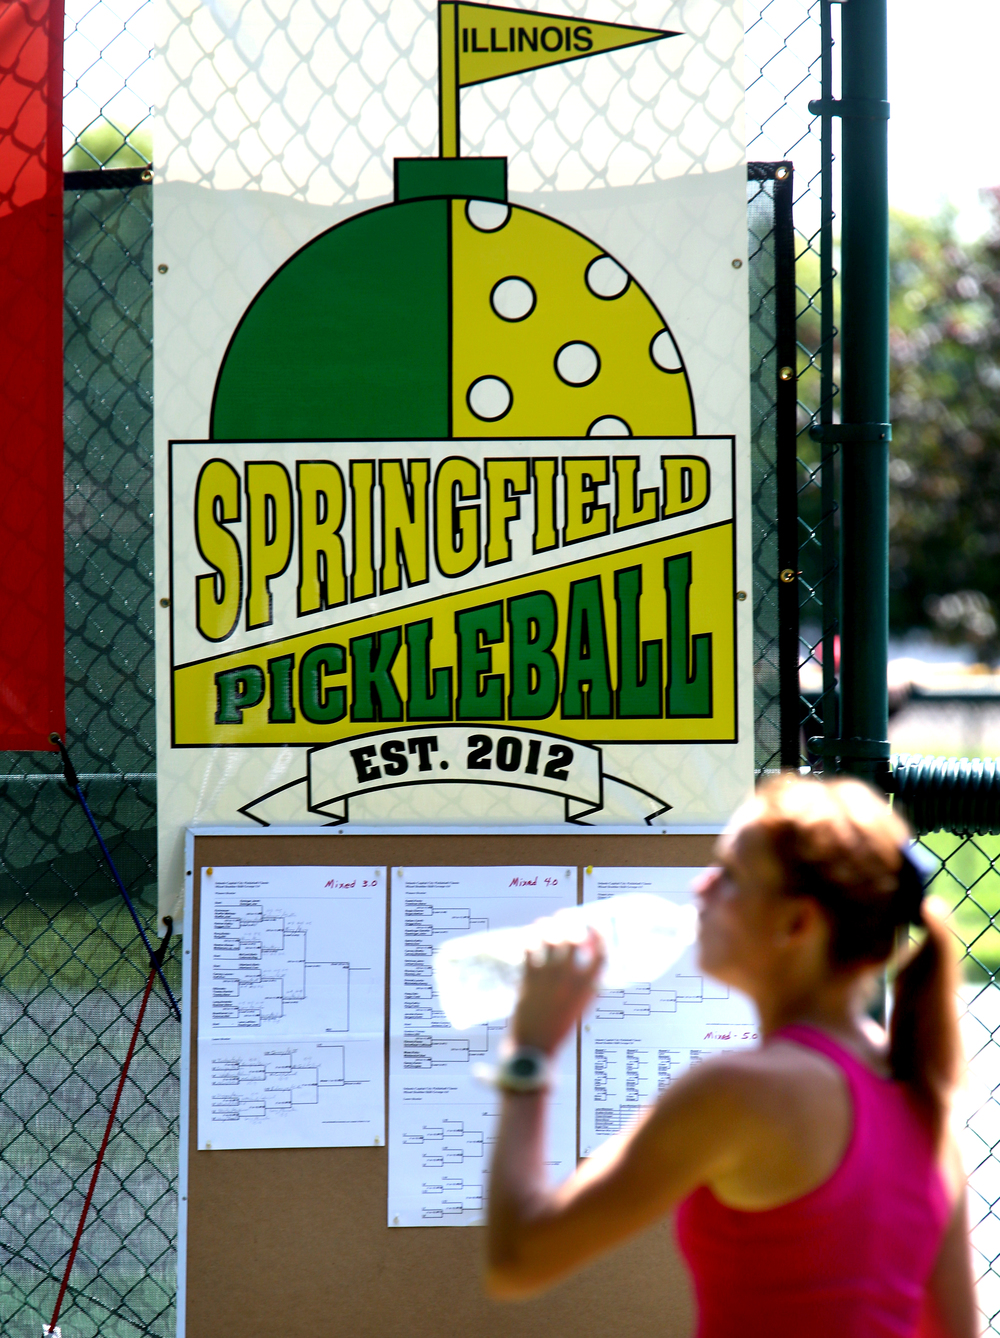 Hydration was the name of the game inside and outside the pickleball courts at Iles Park on Sunday. David Spencer/The State Journal-Register